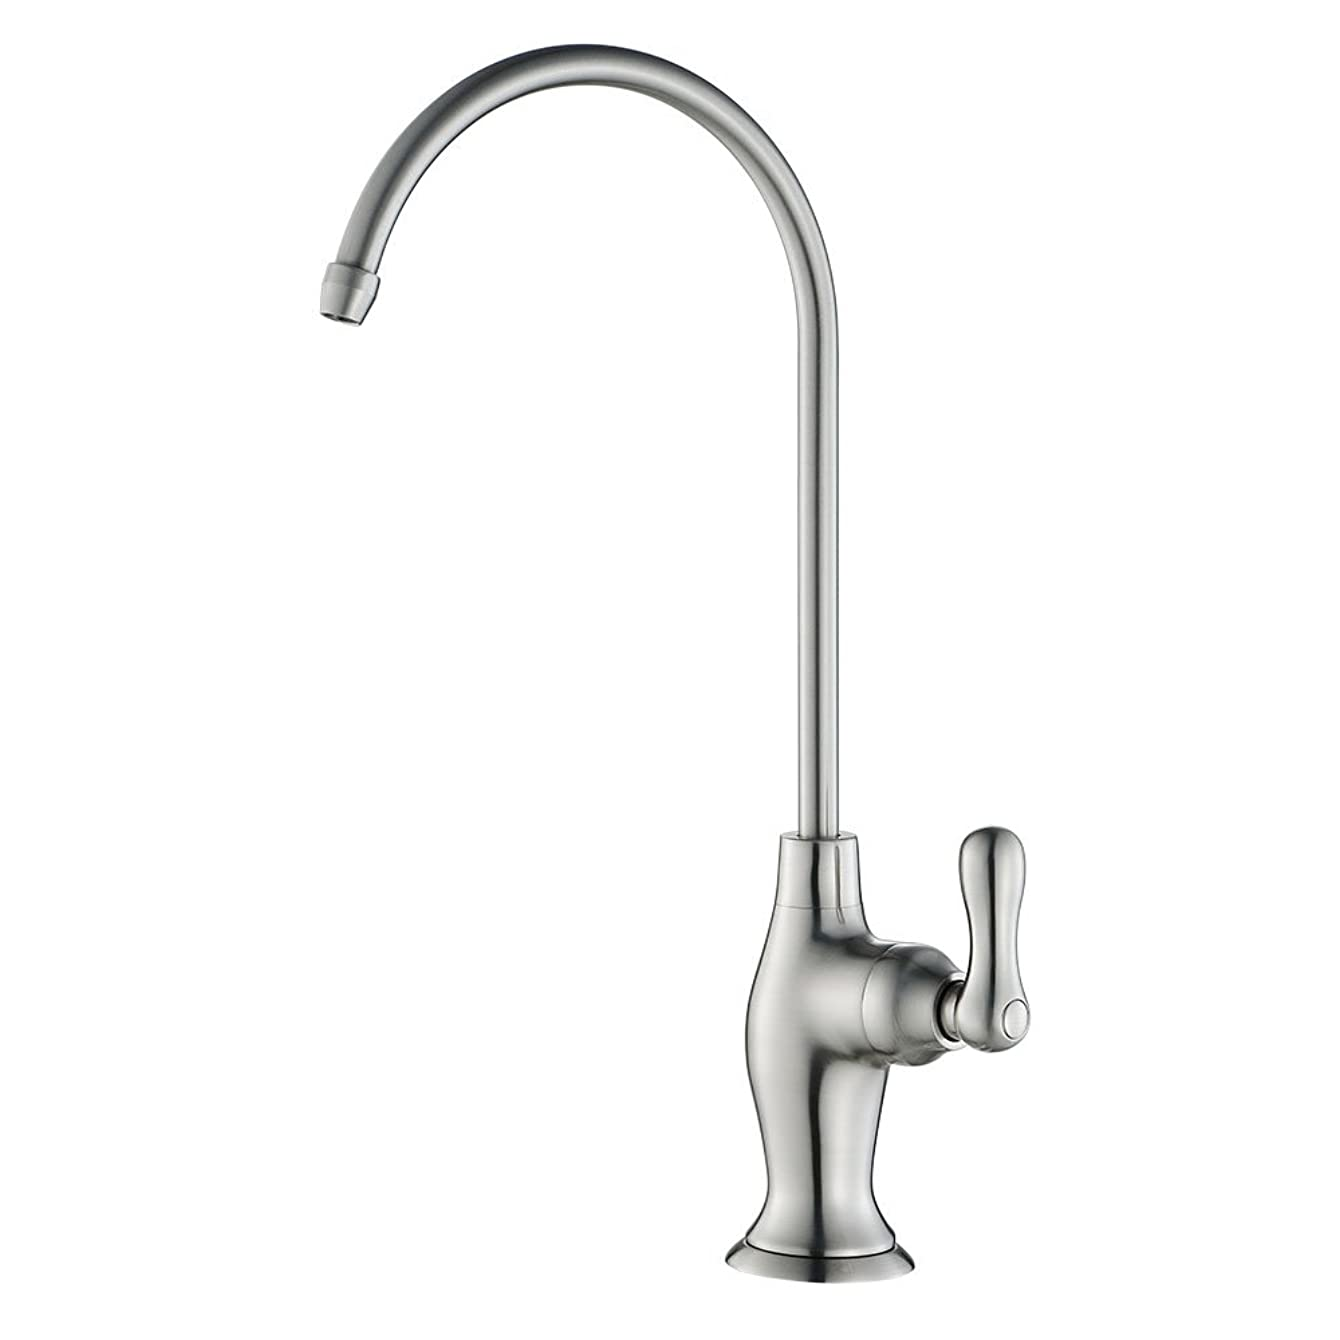 KES RO Water Filter Faucet Kitchen Bar Sink LEAD-FREE Brass Drinking Water Faucet Brushed Nickel, Z104ALF-2